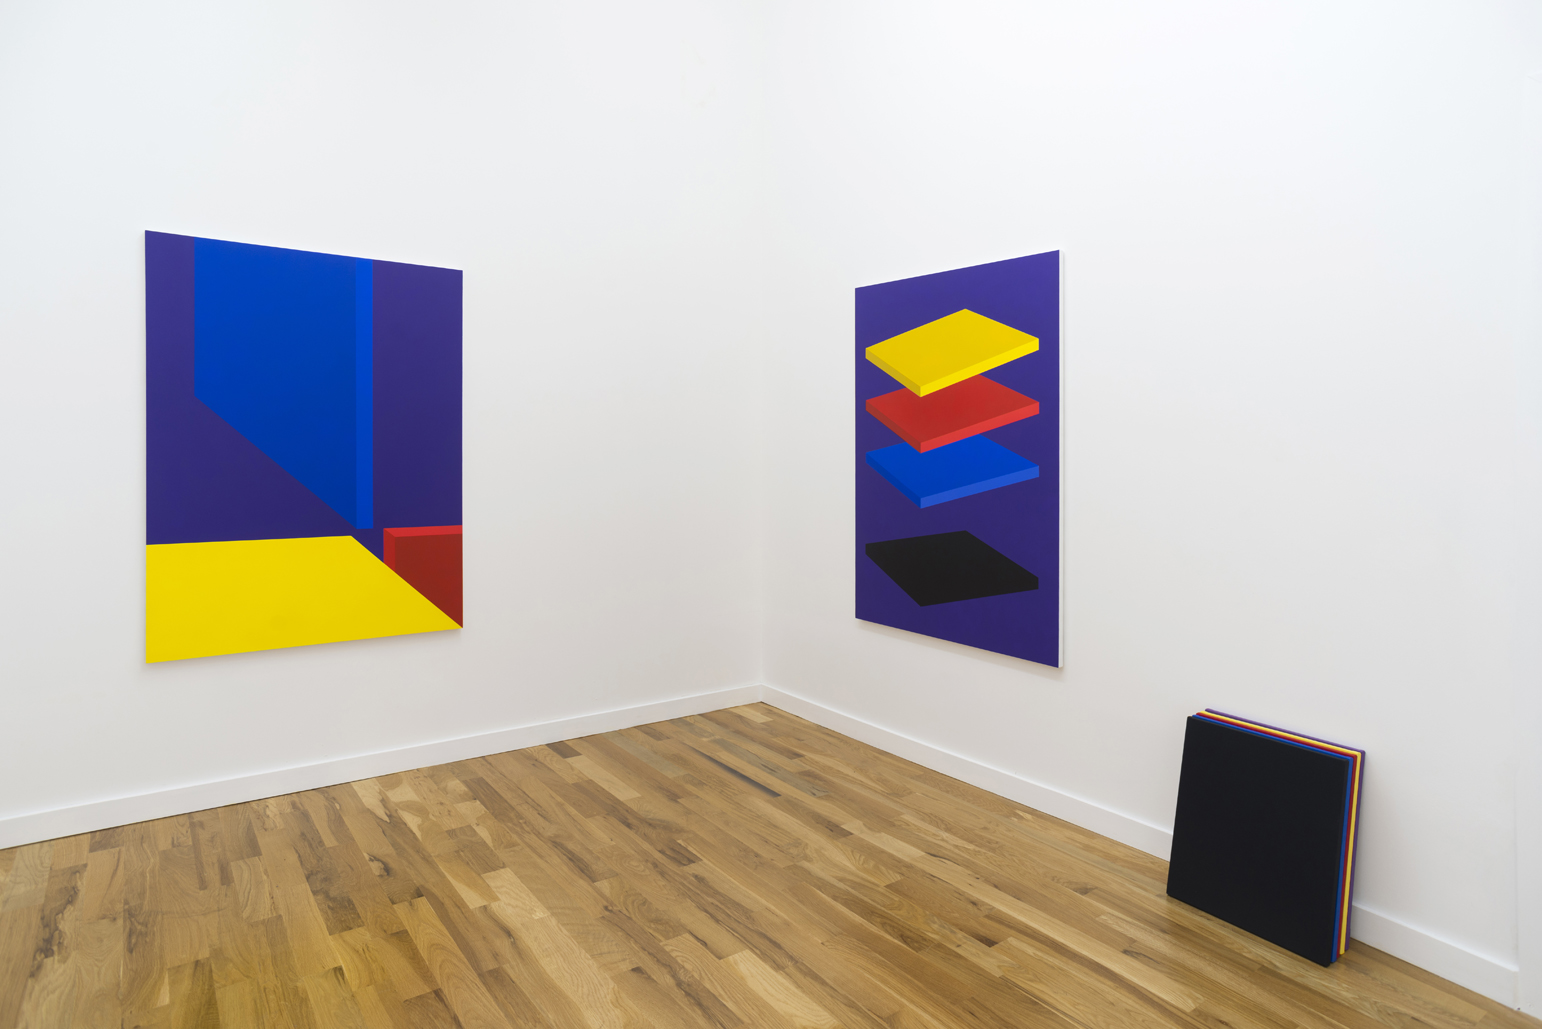 Installation View, As Fiction, 2017